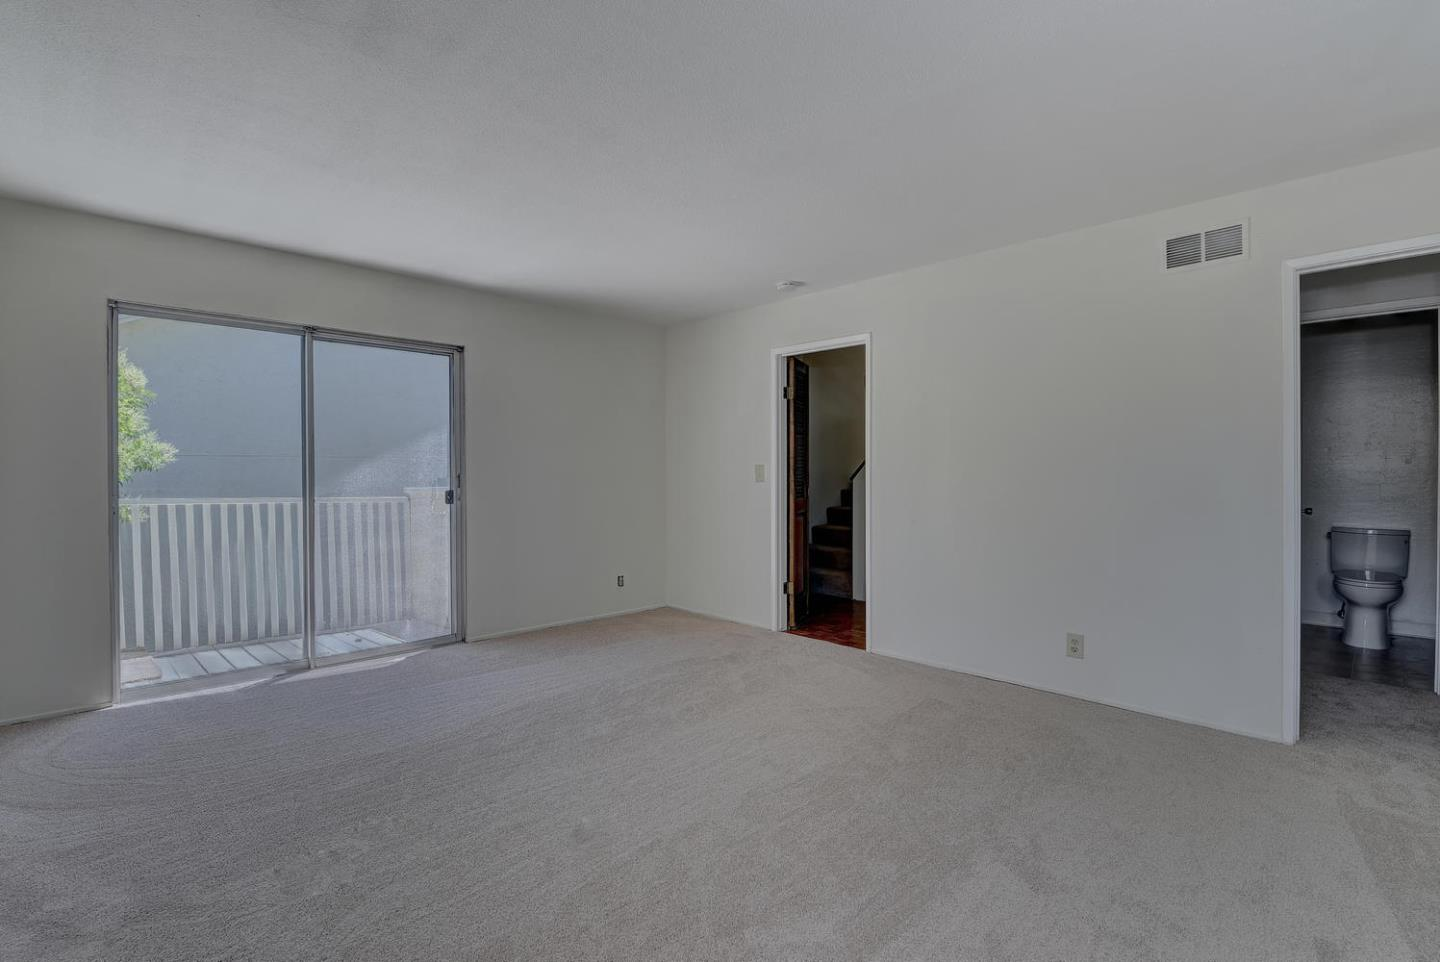 Additional photo for property listing at 10961 Northsky Square  Cupertino, カリフォルニア 95014 アメリカ合衆国